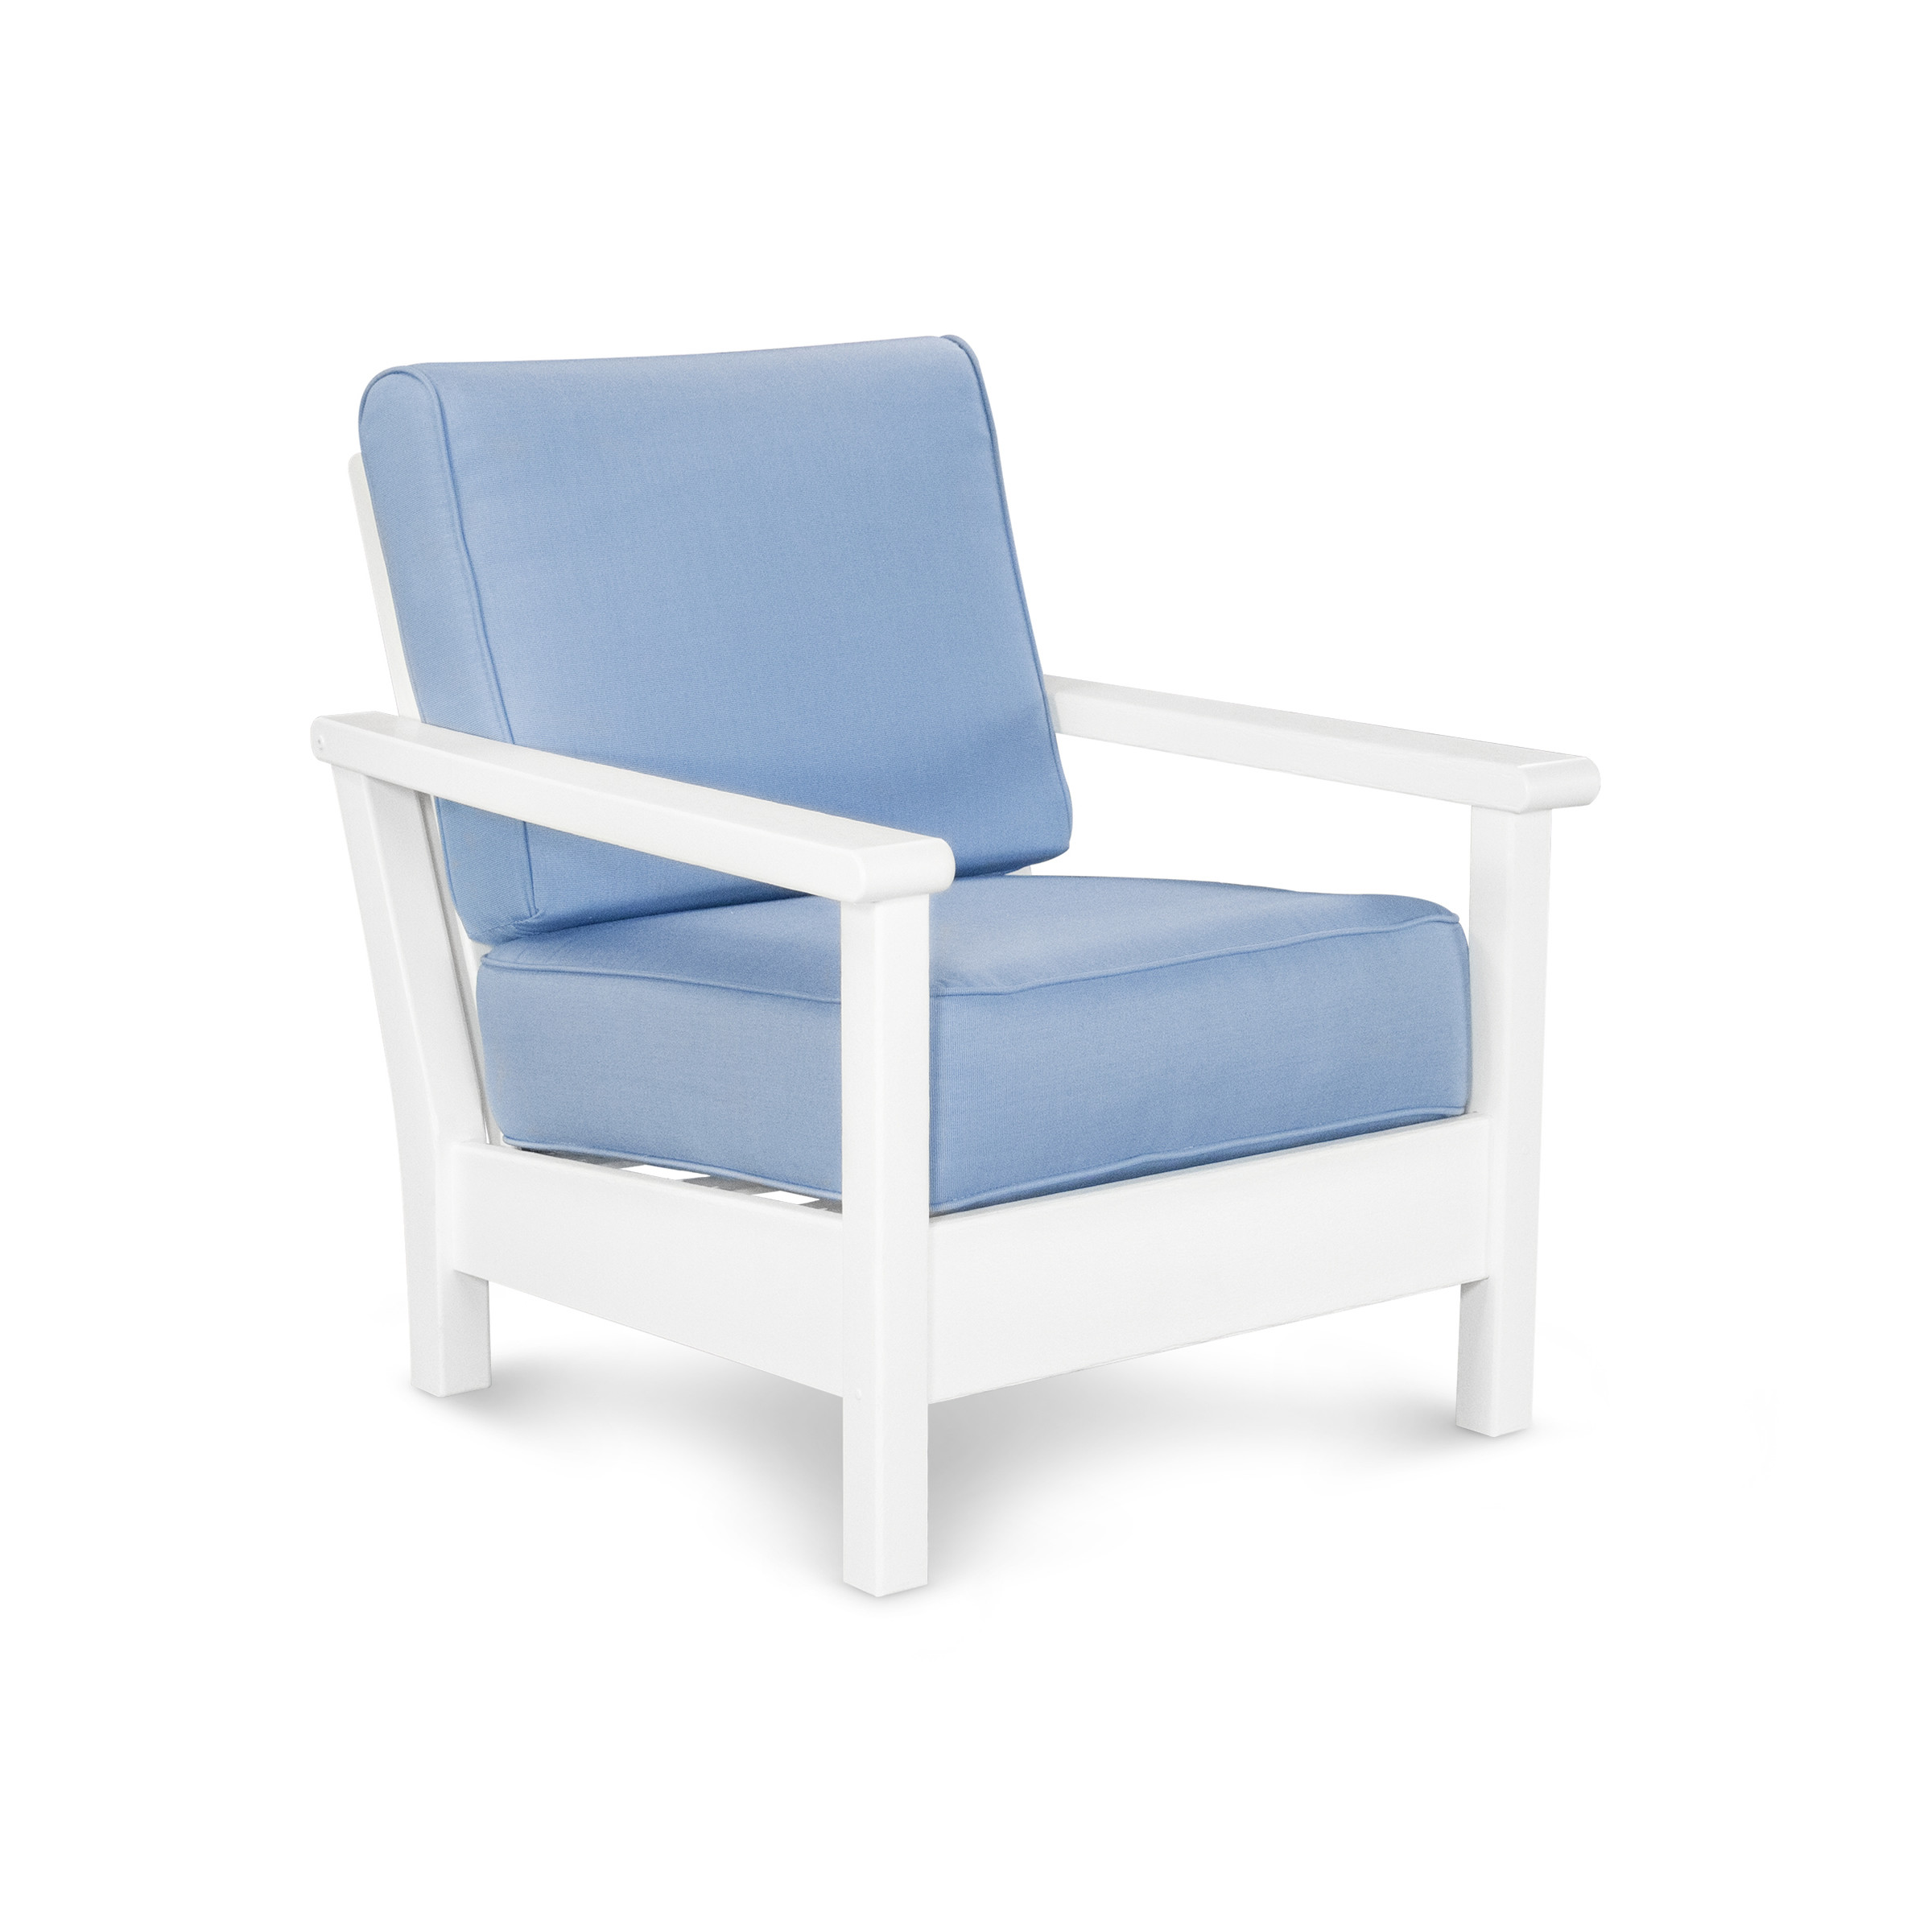 polywood harbour deep seating chair   harbour deep seating